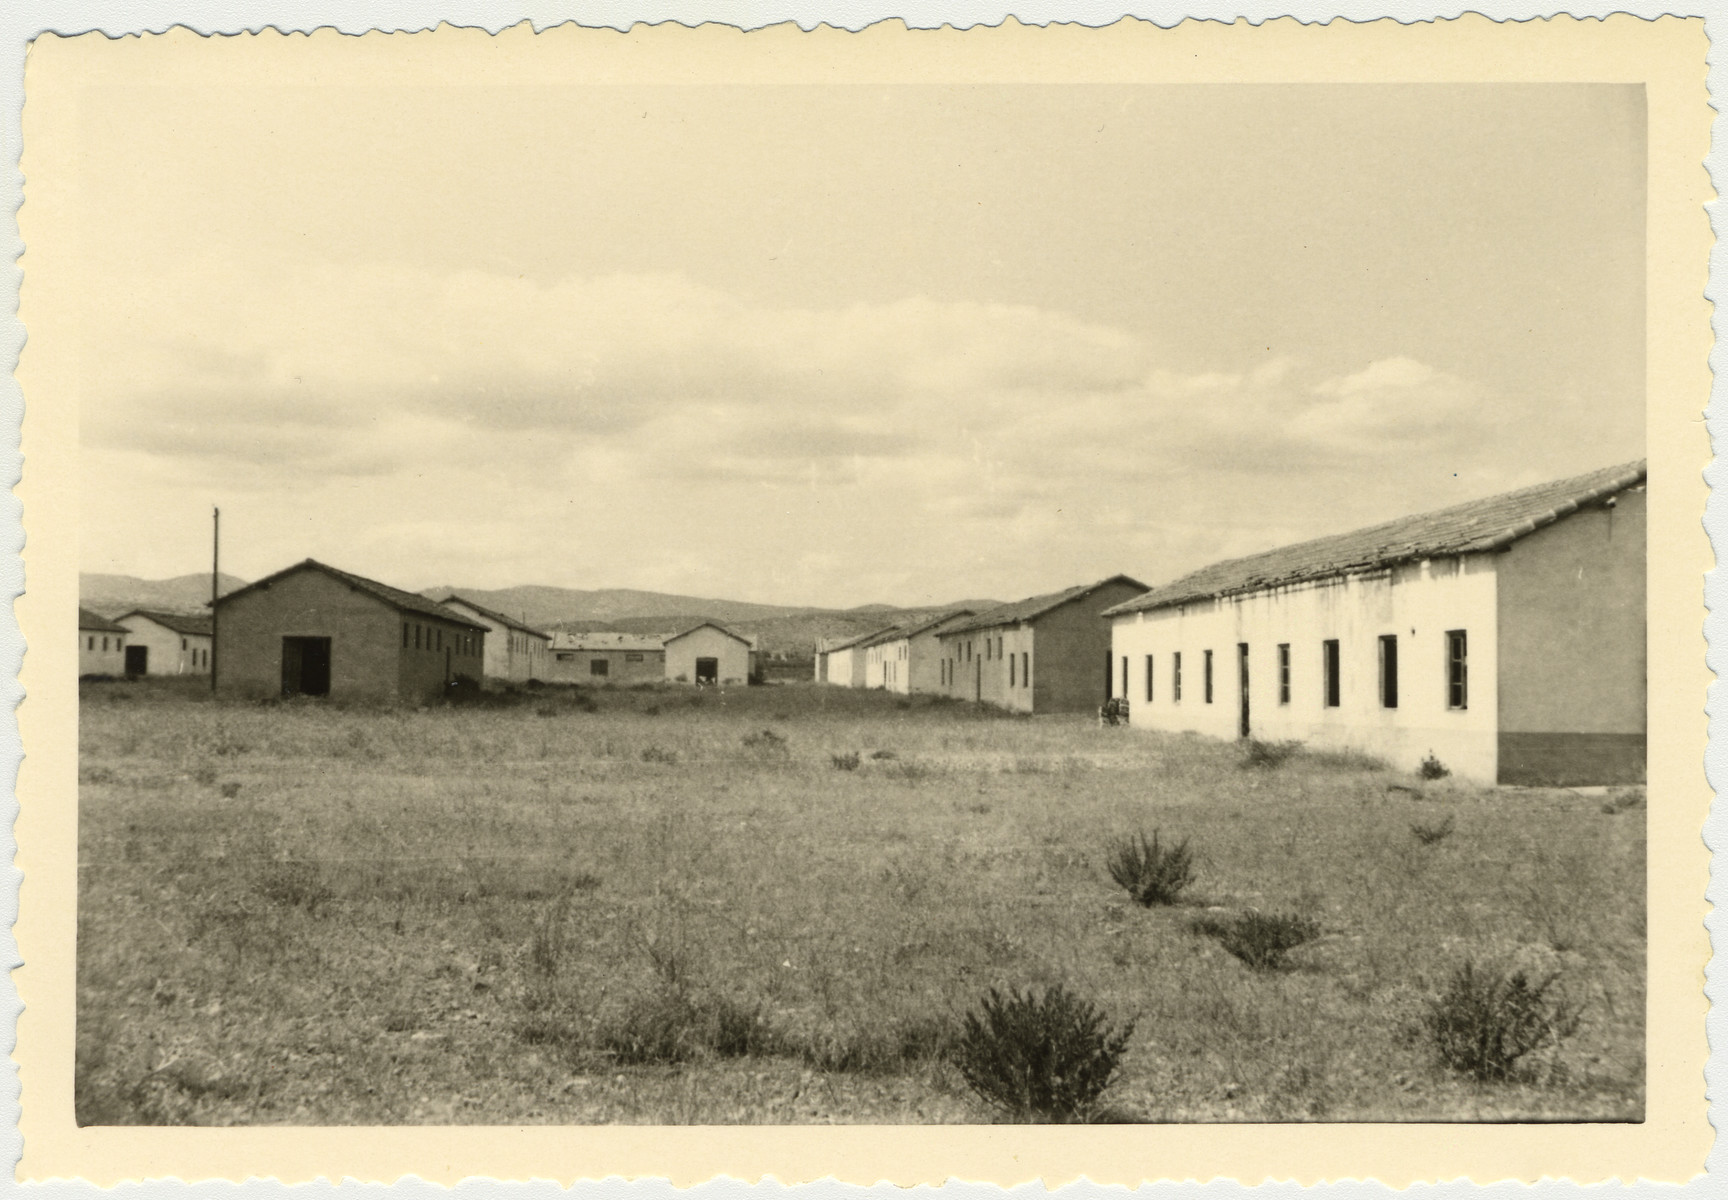 Postwar photograph fo the barracks in the Rivesaltes internment camp.